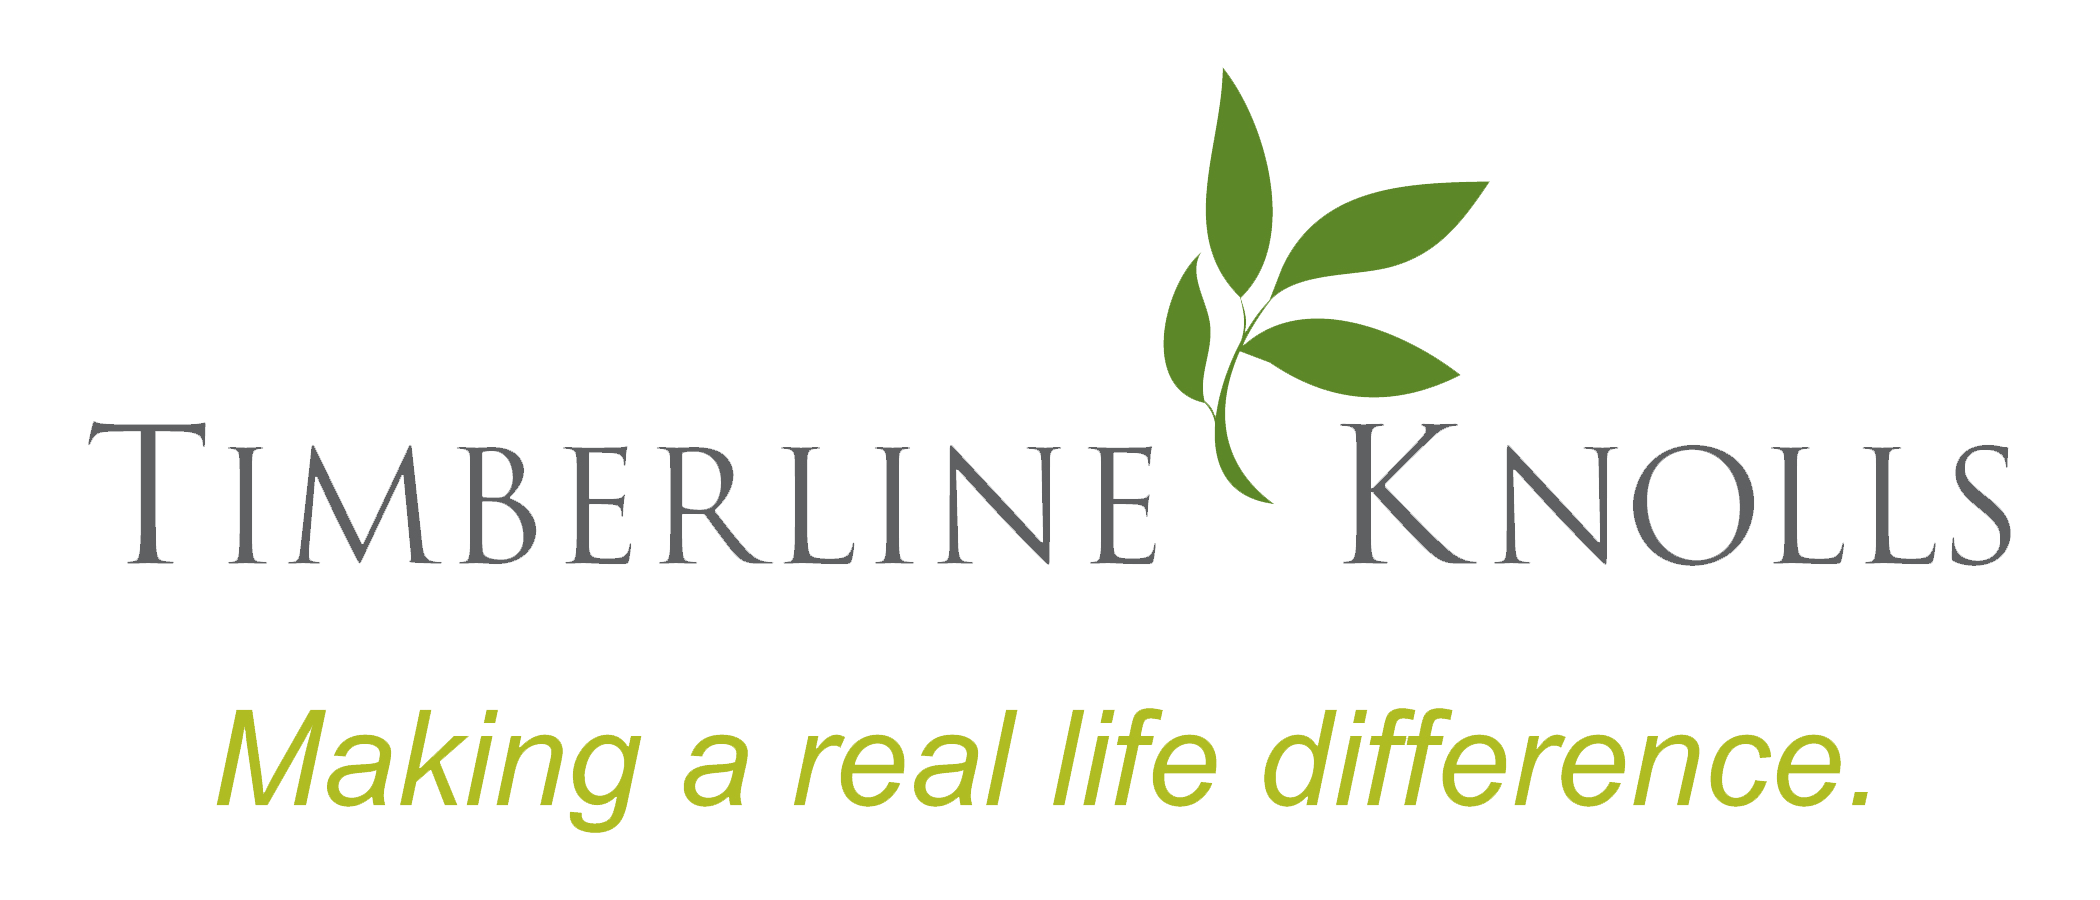 Timberline Knolls - Making a Real Life Difference